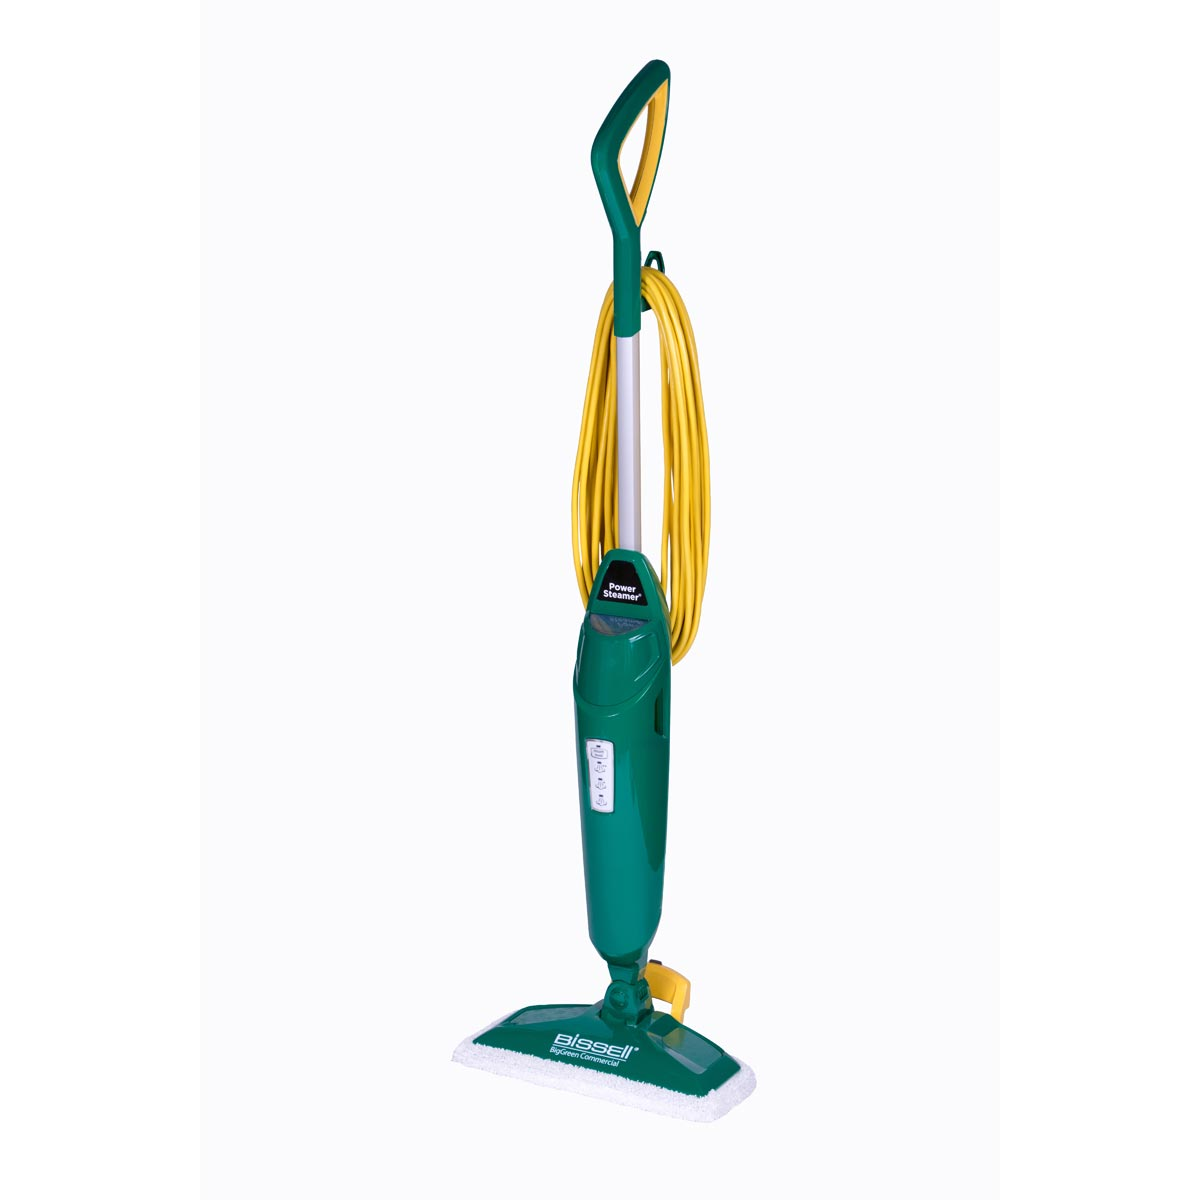 Bissell BGST1566 Steam Mop Vapor machine